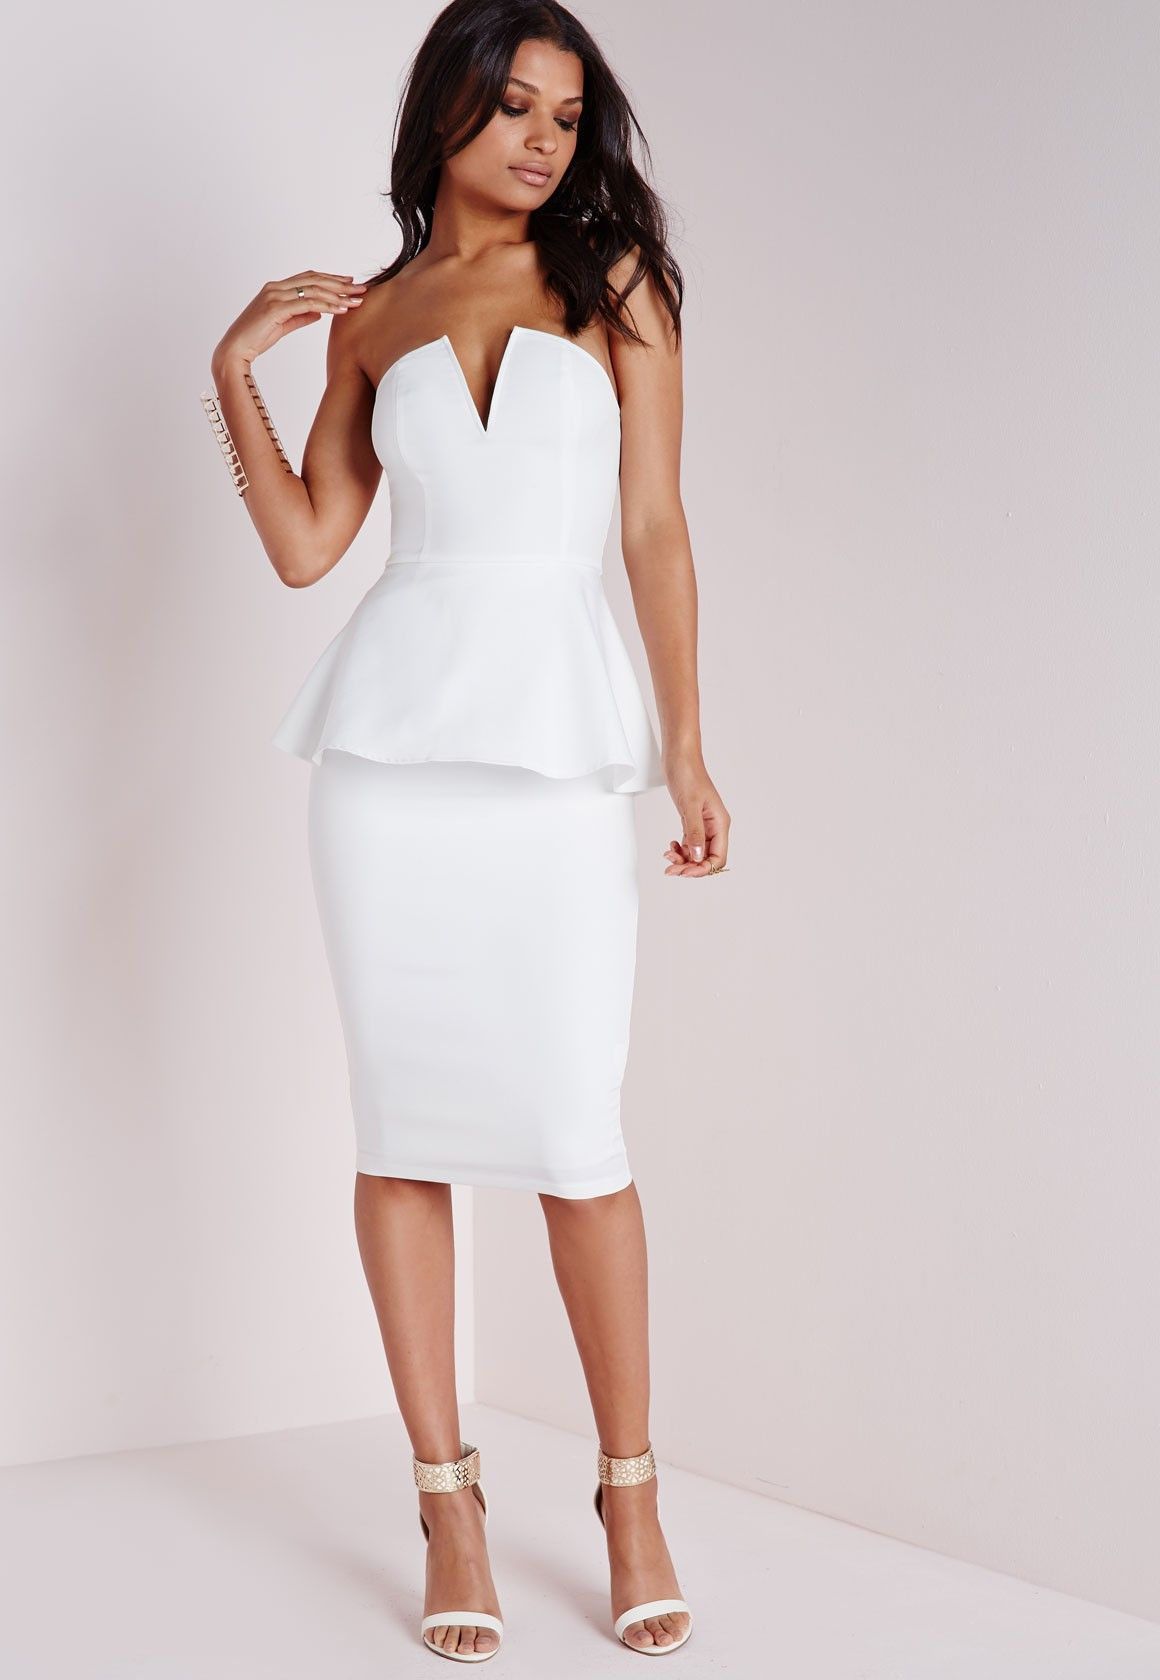 2018 pink and white bodycon bandage midi dress